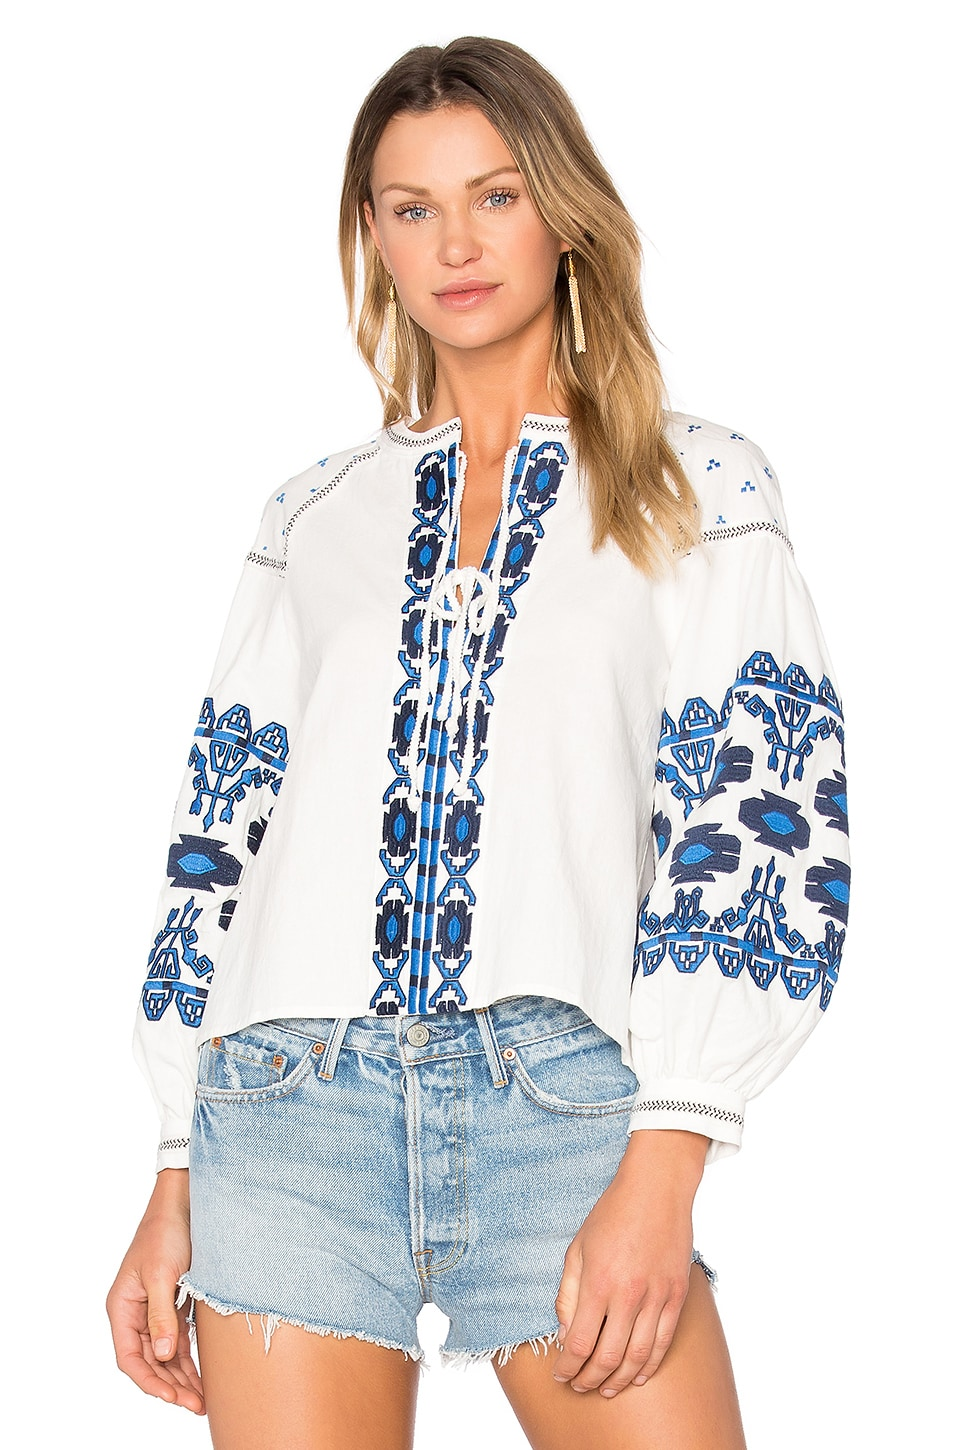 Marrakech Top by Central Park West